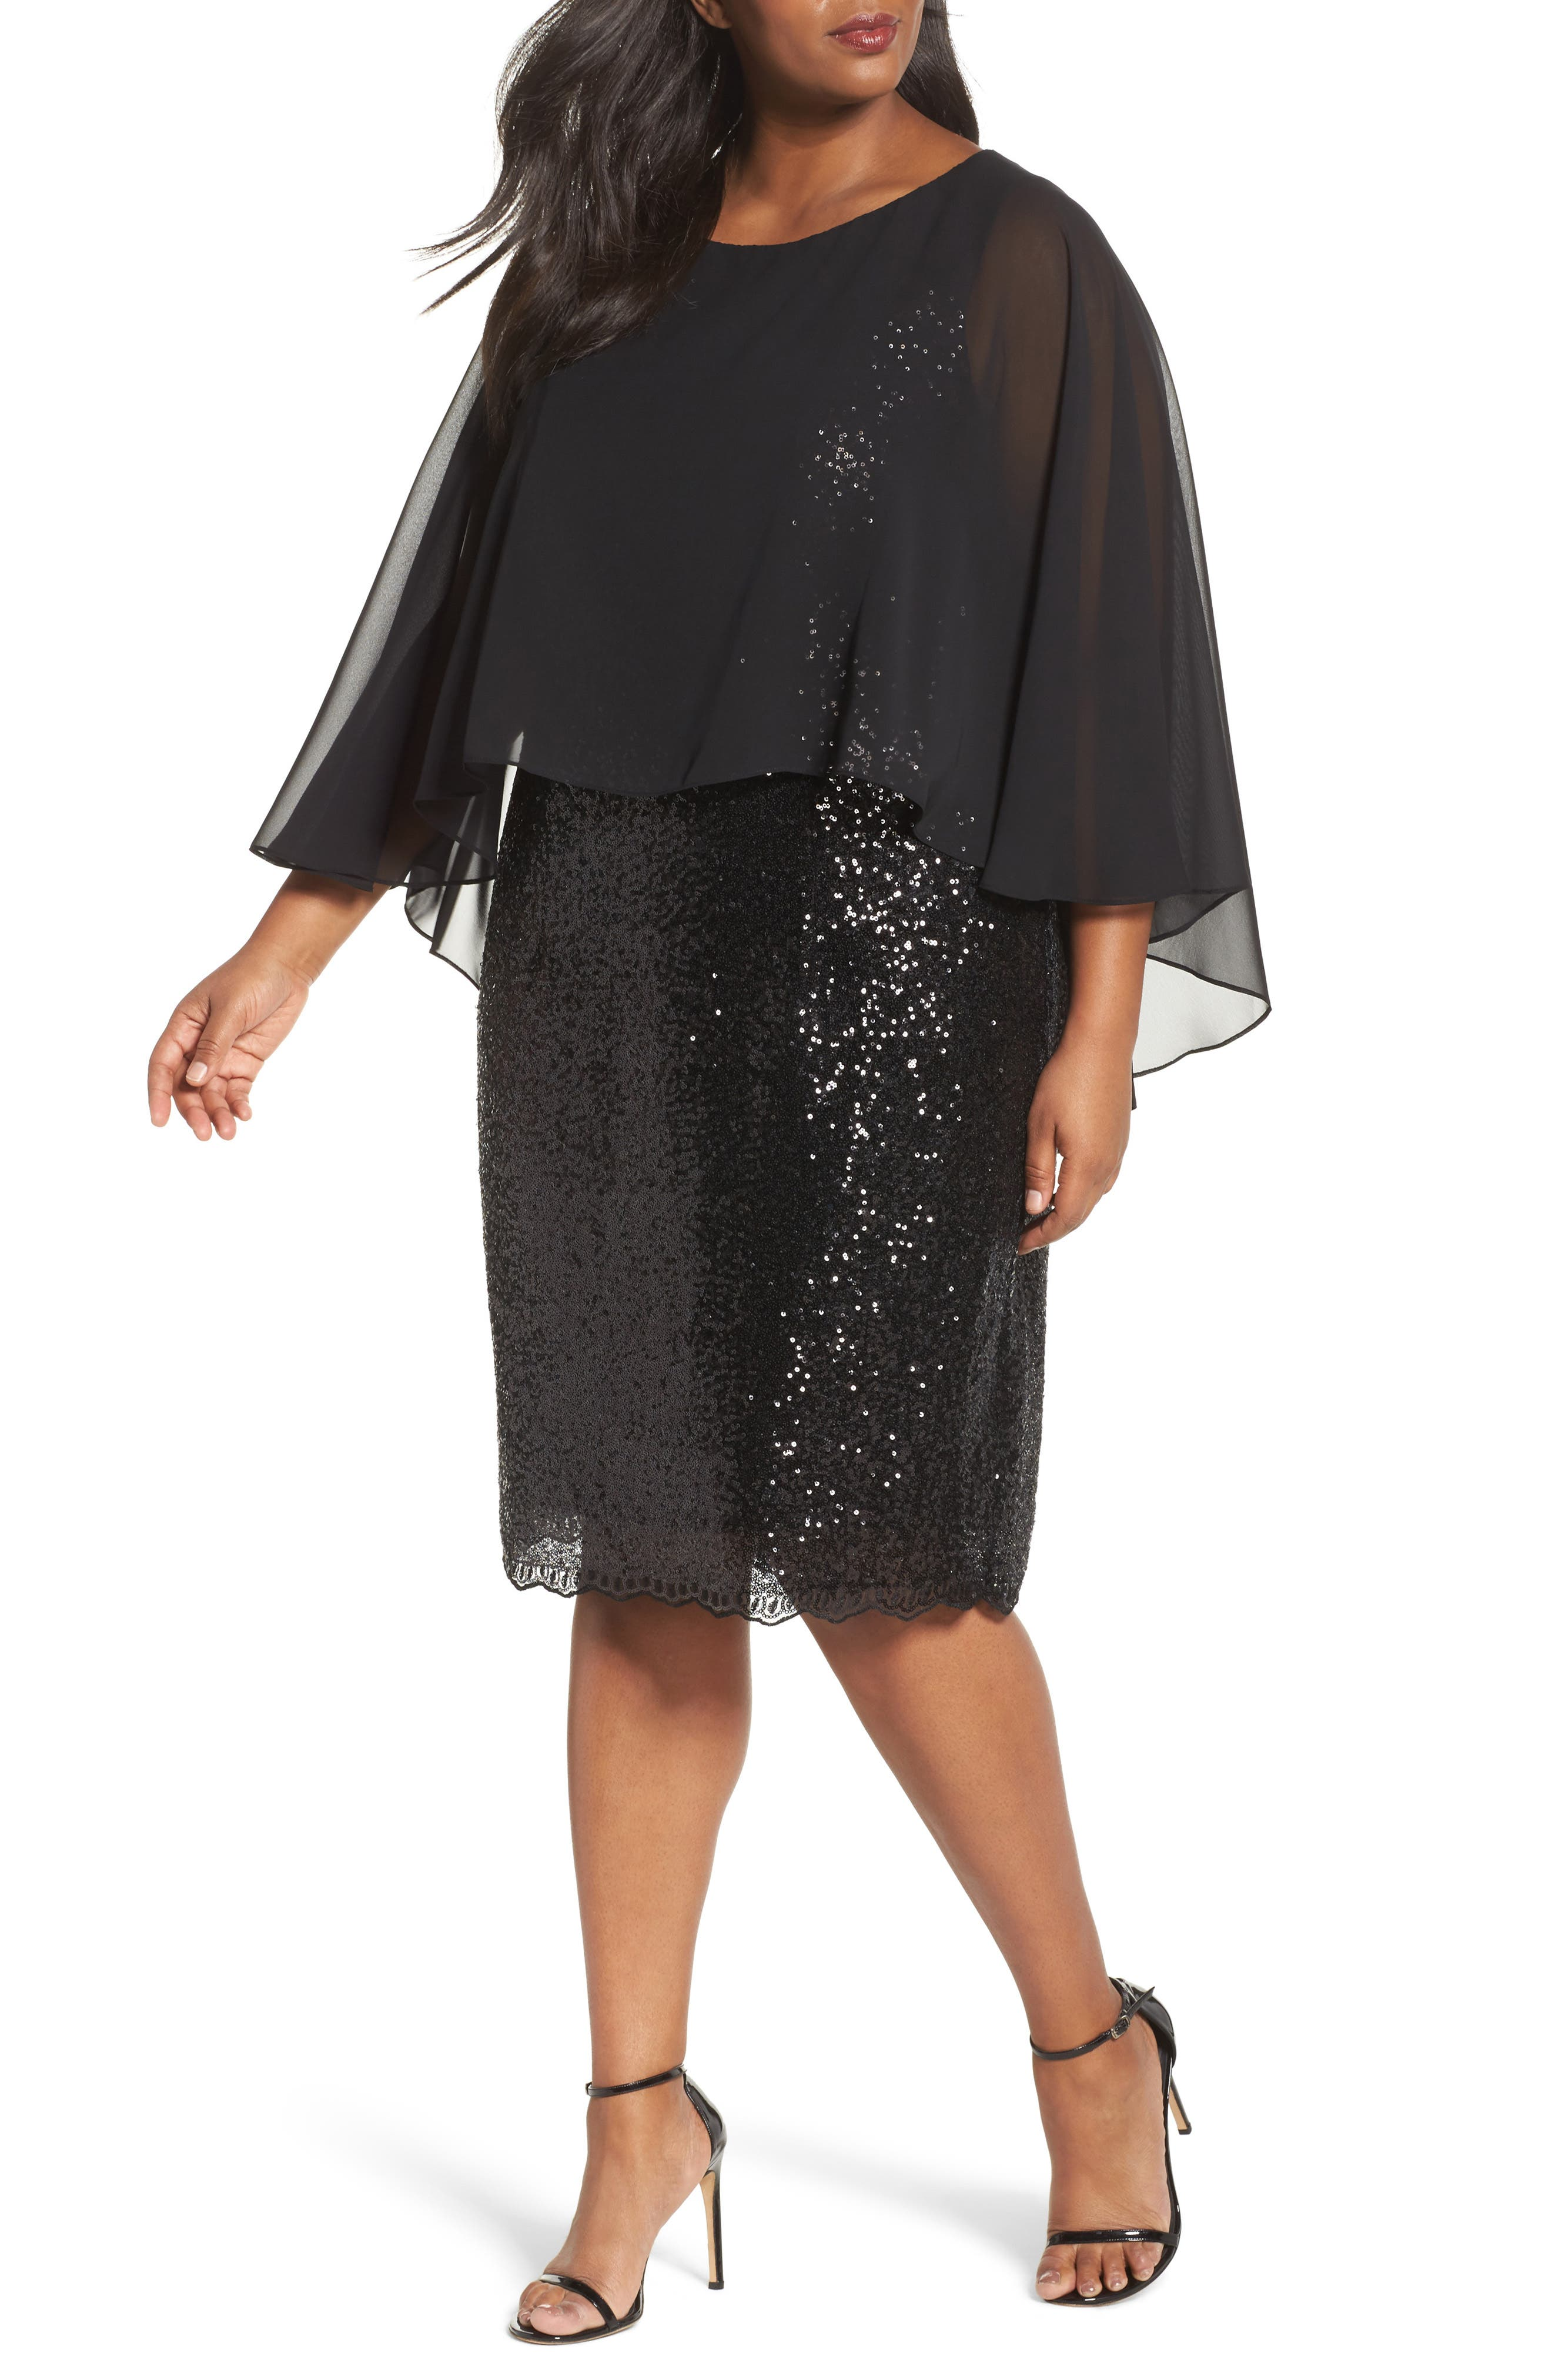 Alternate Image 1 Selected - Alex Evenings Capelet Sequin Shift Dress (Plus Size)